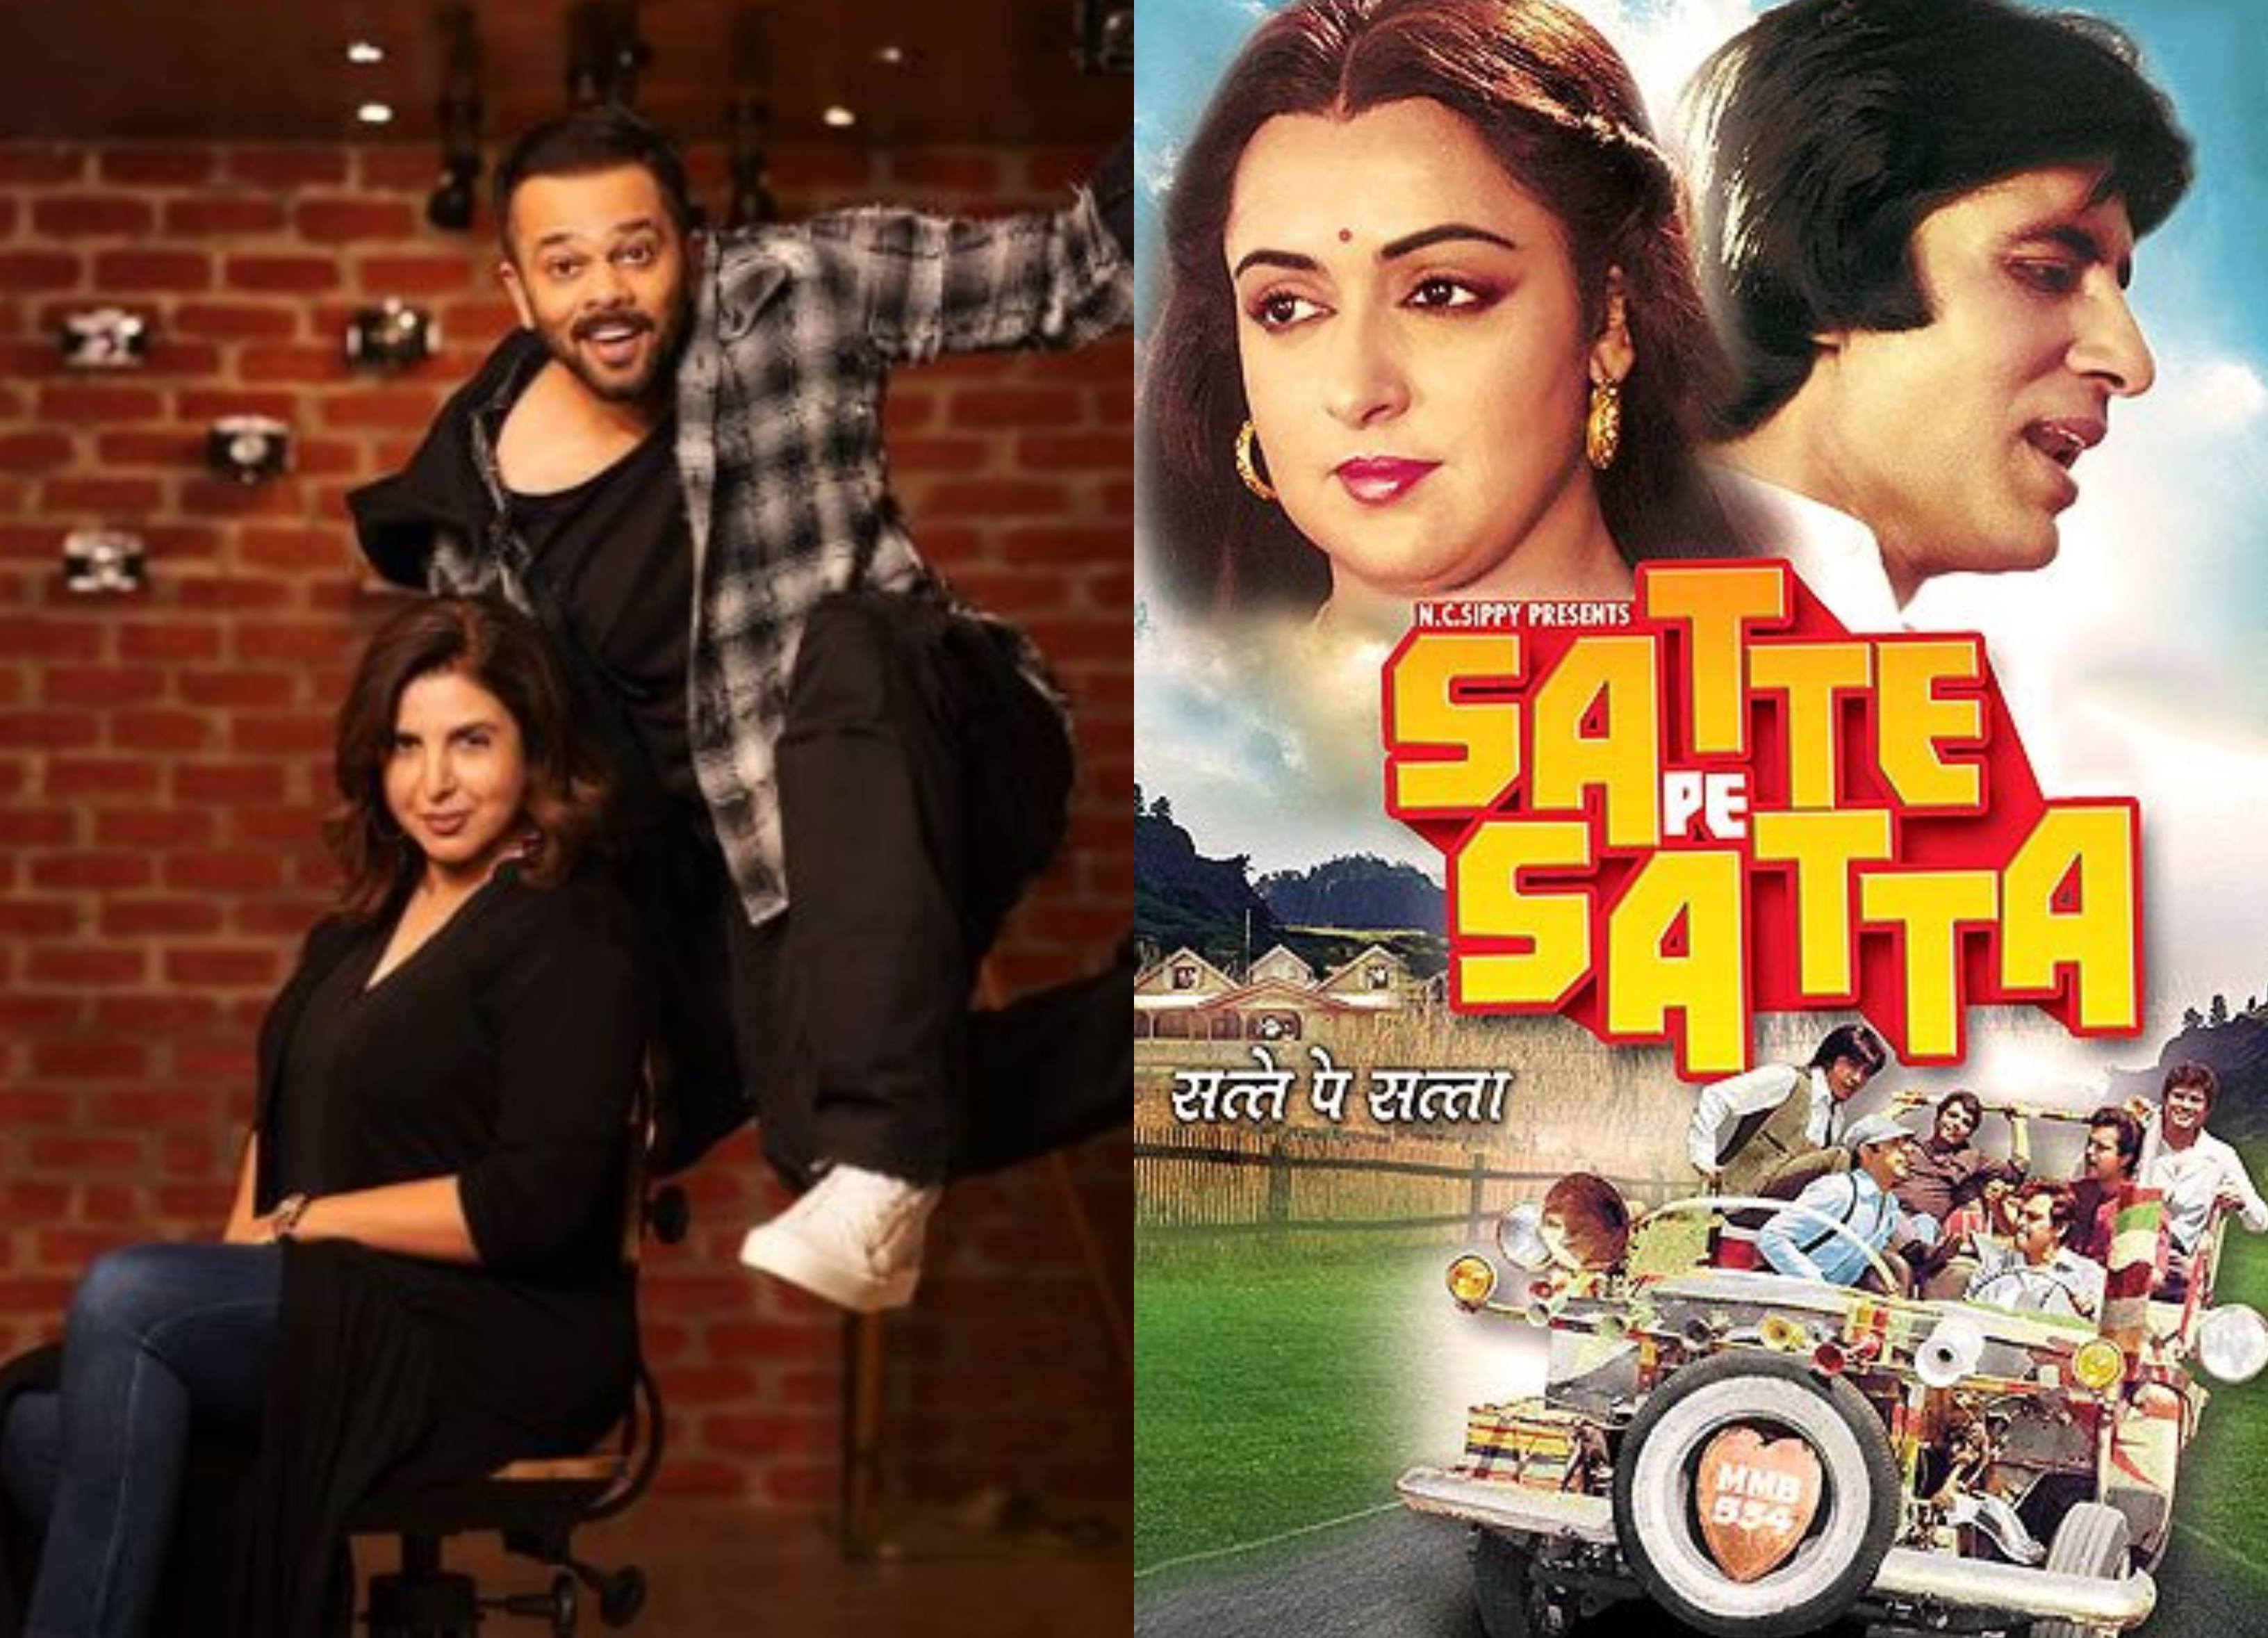 Rohit Shetty and Farah Khan to remake Satte Pe Satta